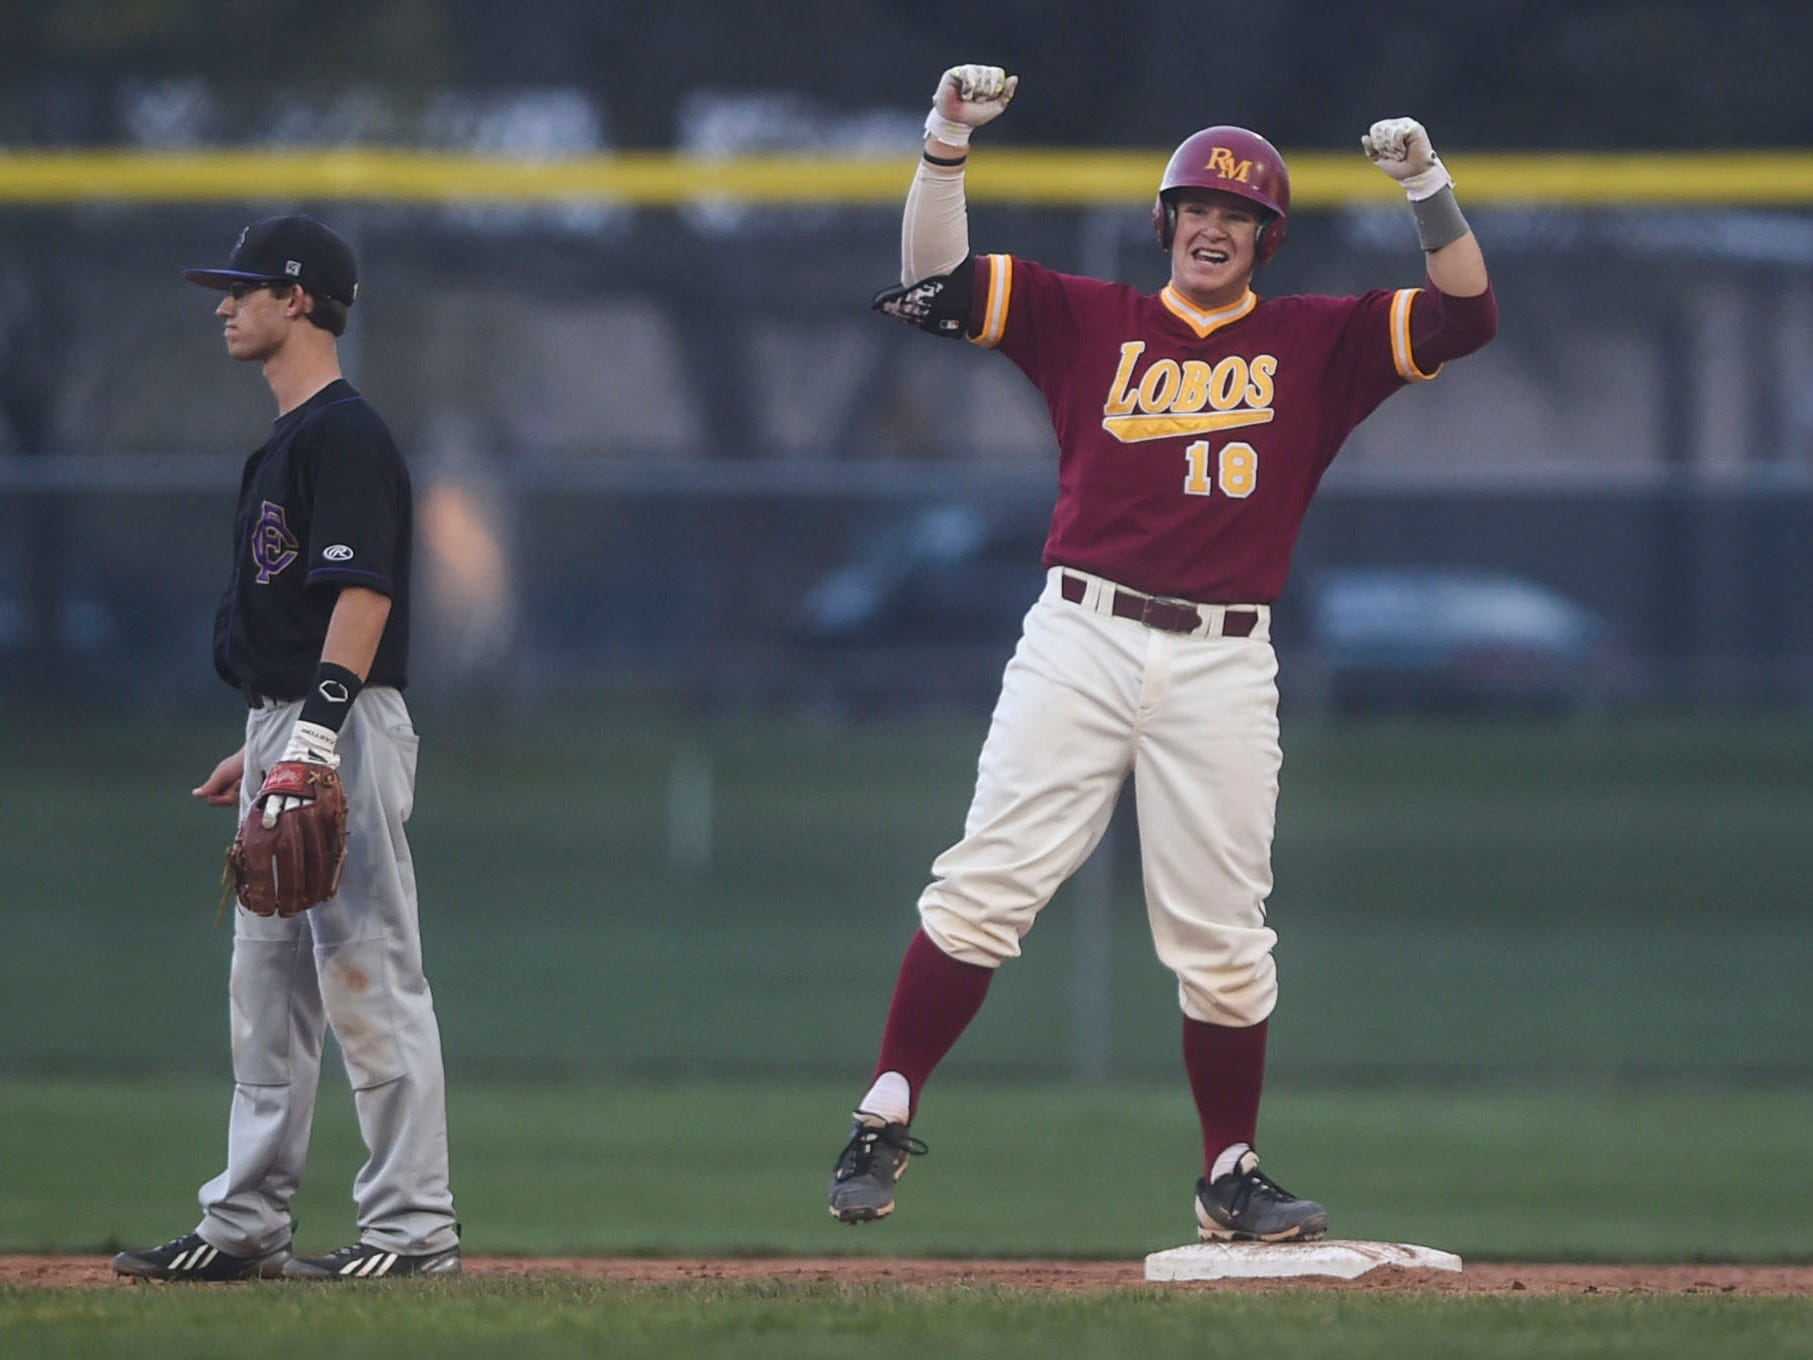 Rocky Mountain's Garrett Hammer is fifth among area baseball players in RBI and fourth in home runs and the Lobos are No. 1 in the final Associated Press media poll of the season.